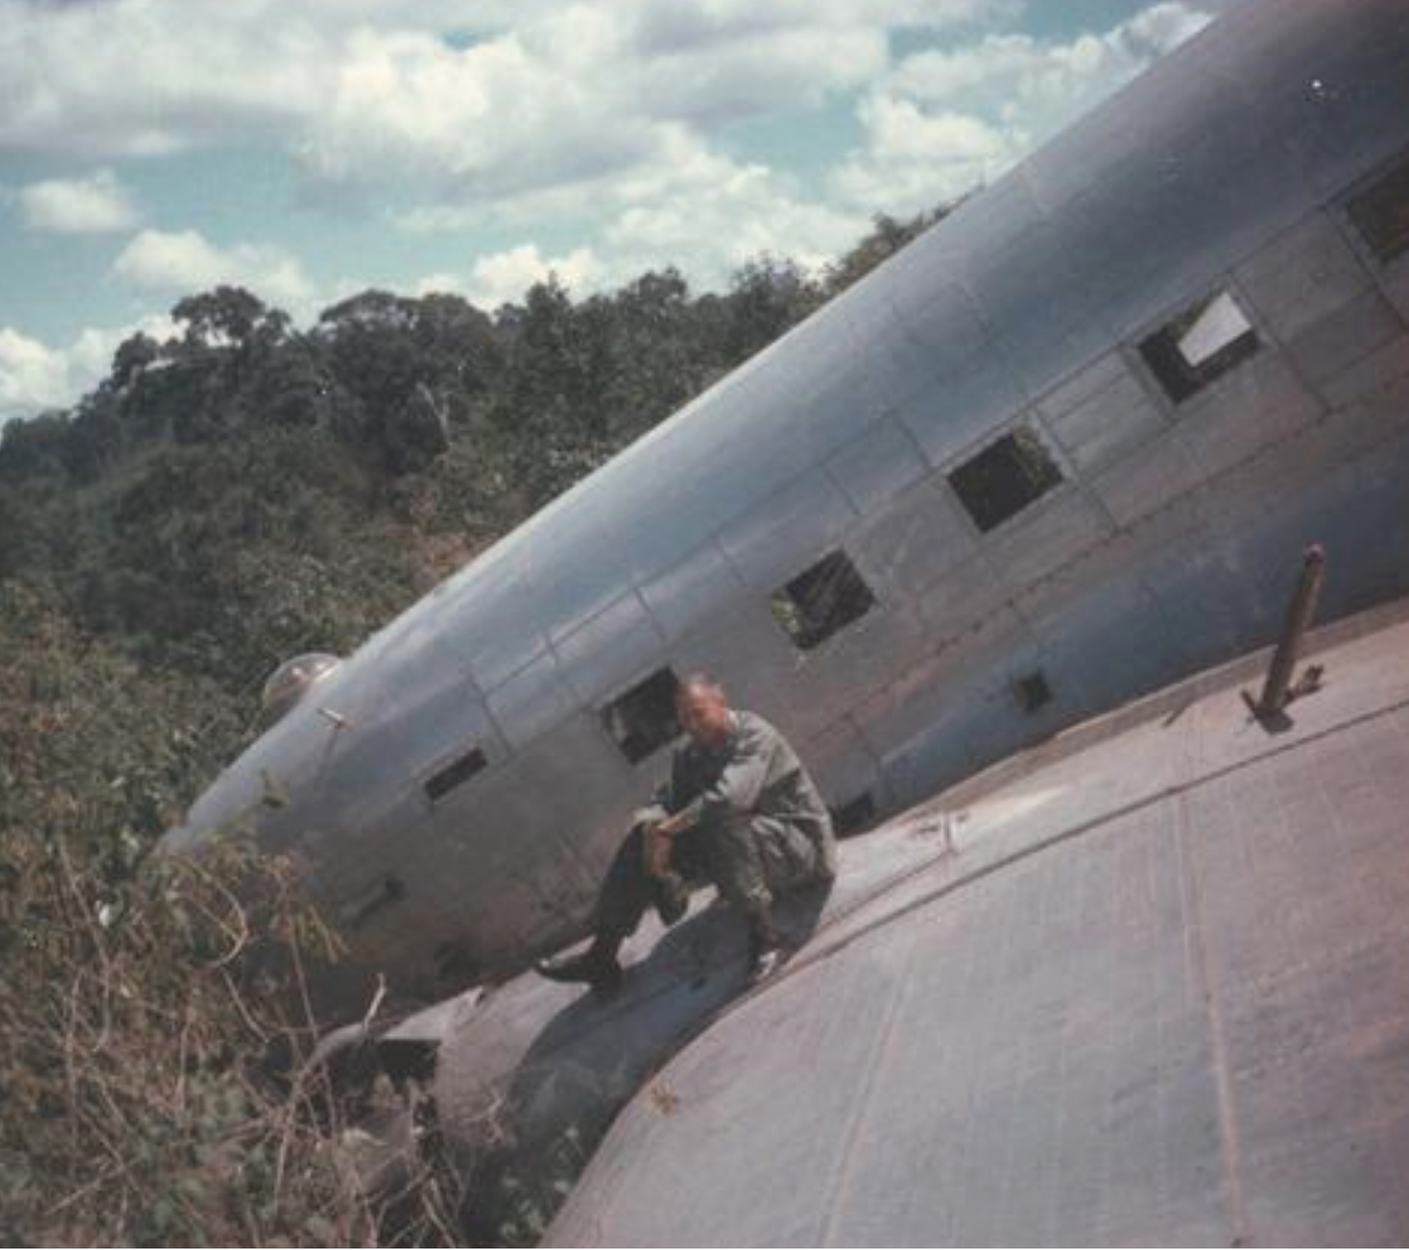 Roger sitting on a wing of a wrecked aircraft